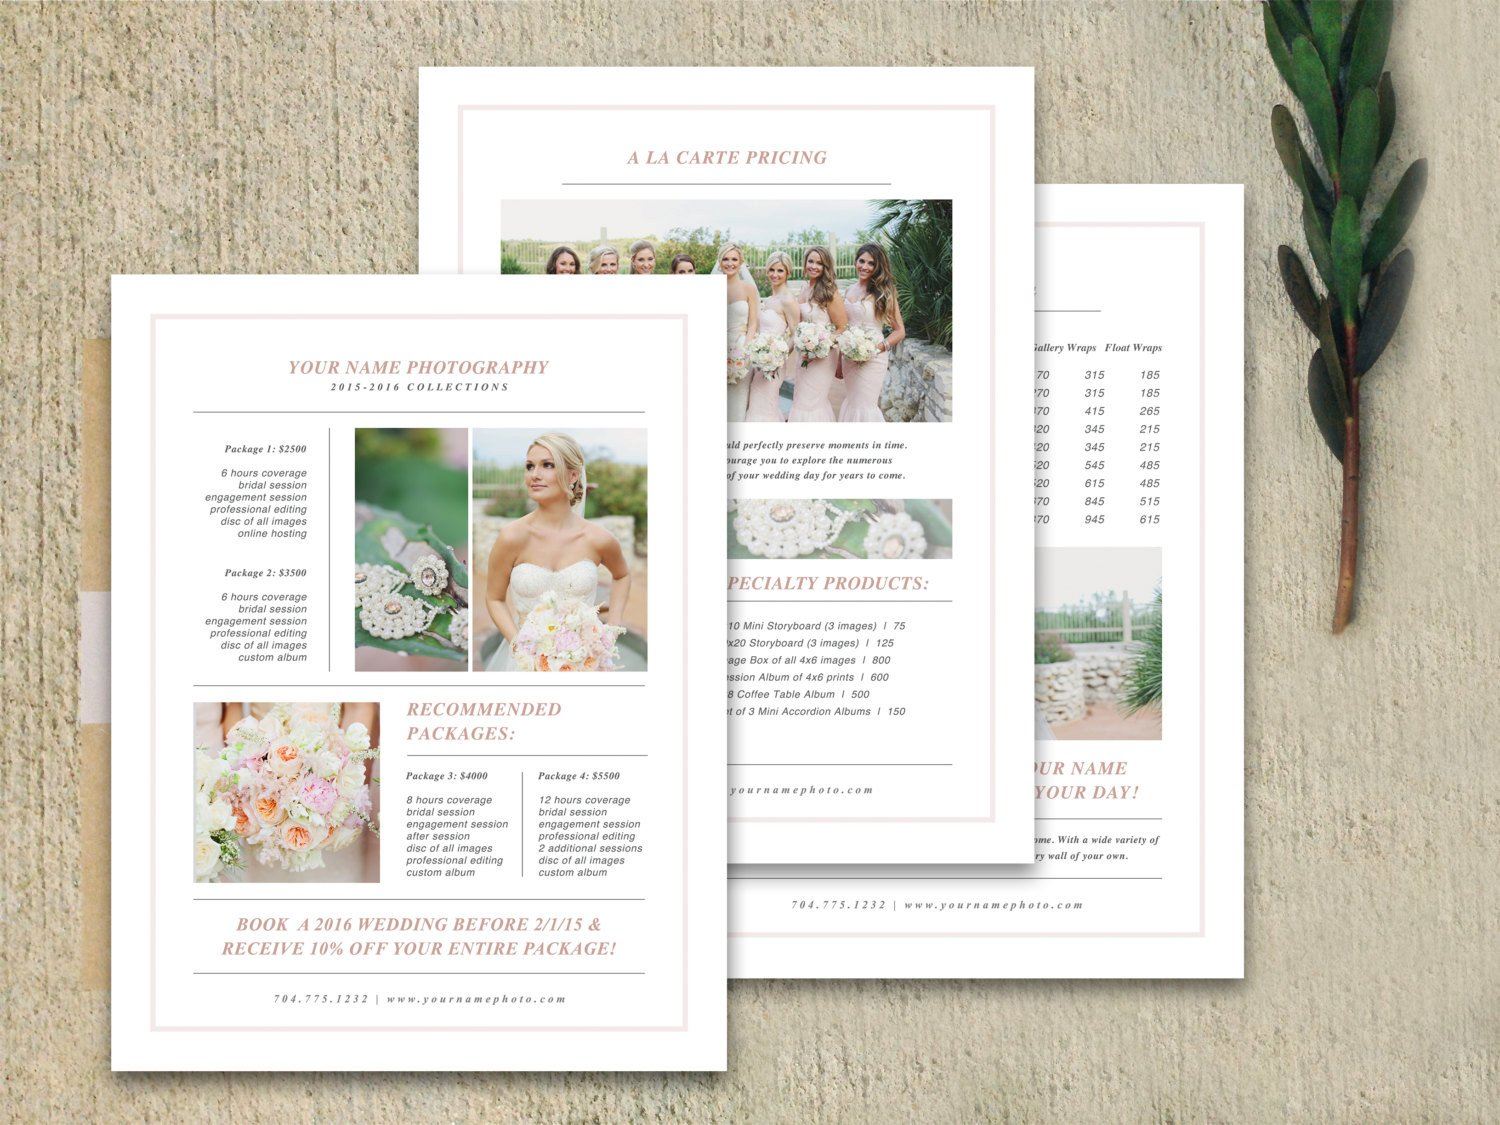 Free Photography Marketing Templates Graphy Marketing Graphy Pricing Template